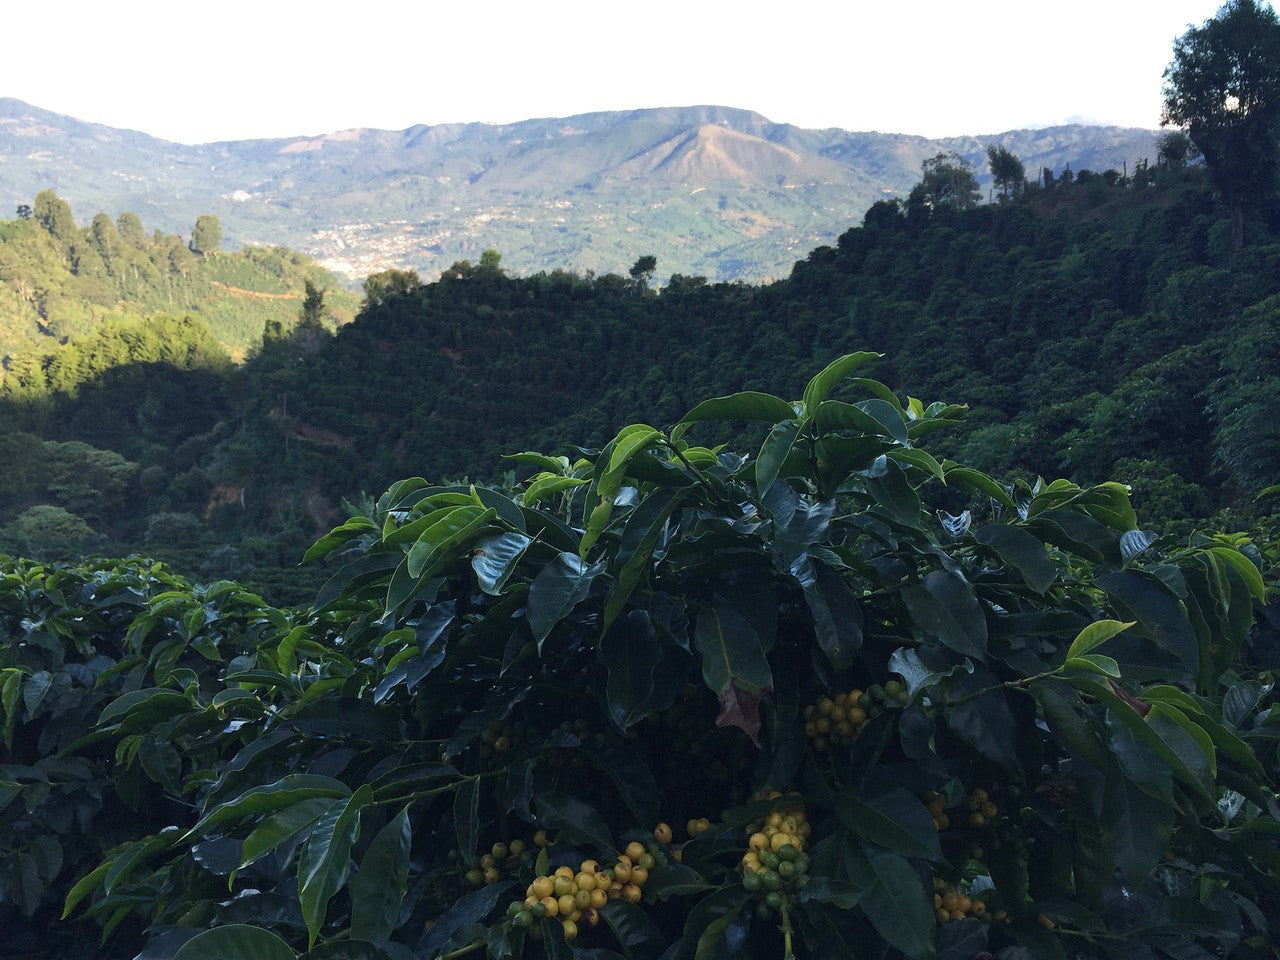 Some healthy Arabica trees, and beautiful view of the surrounding mountains